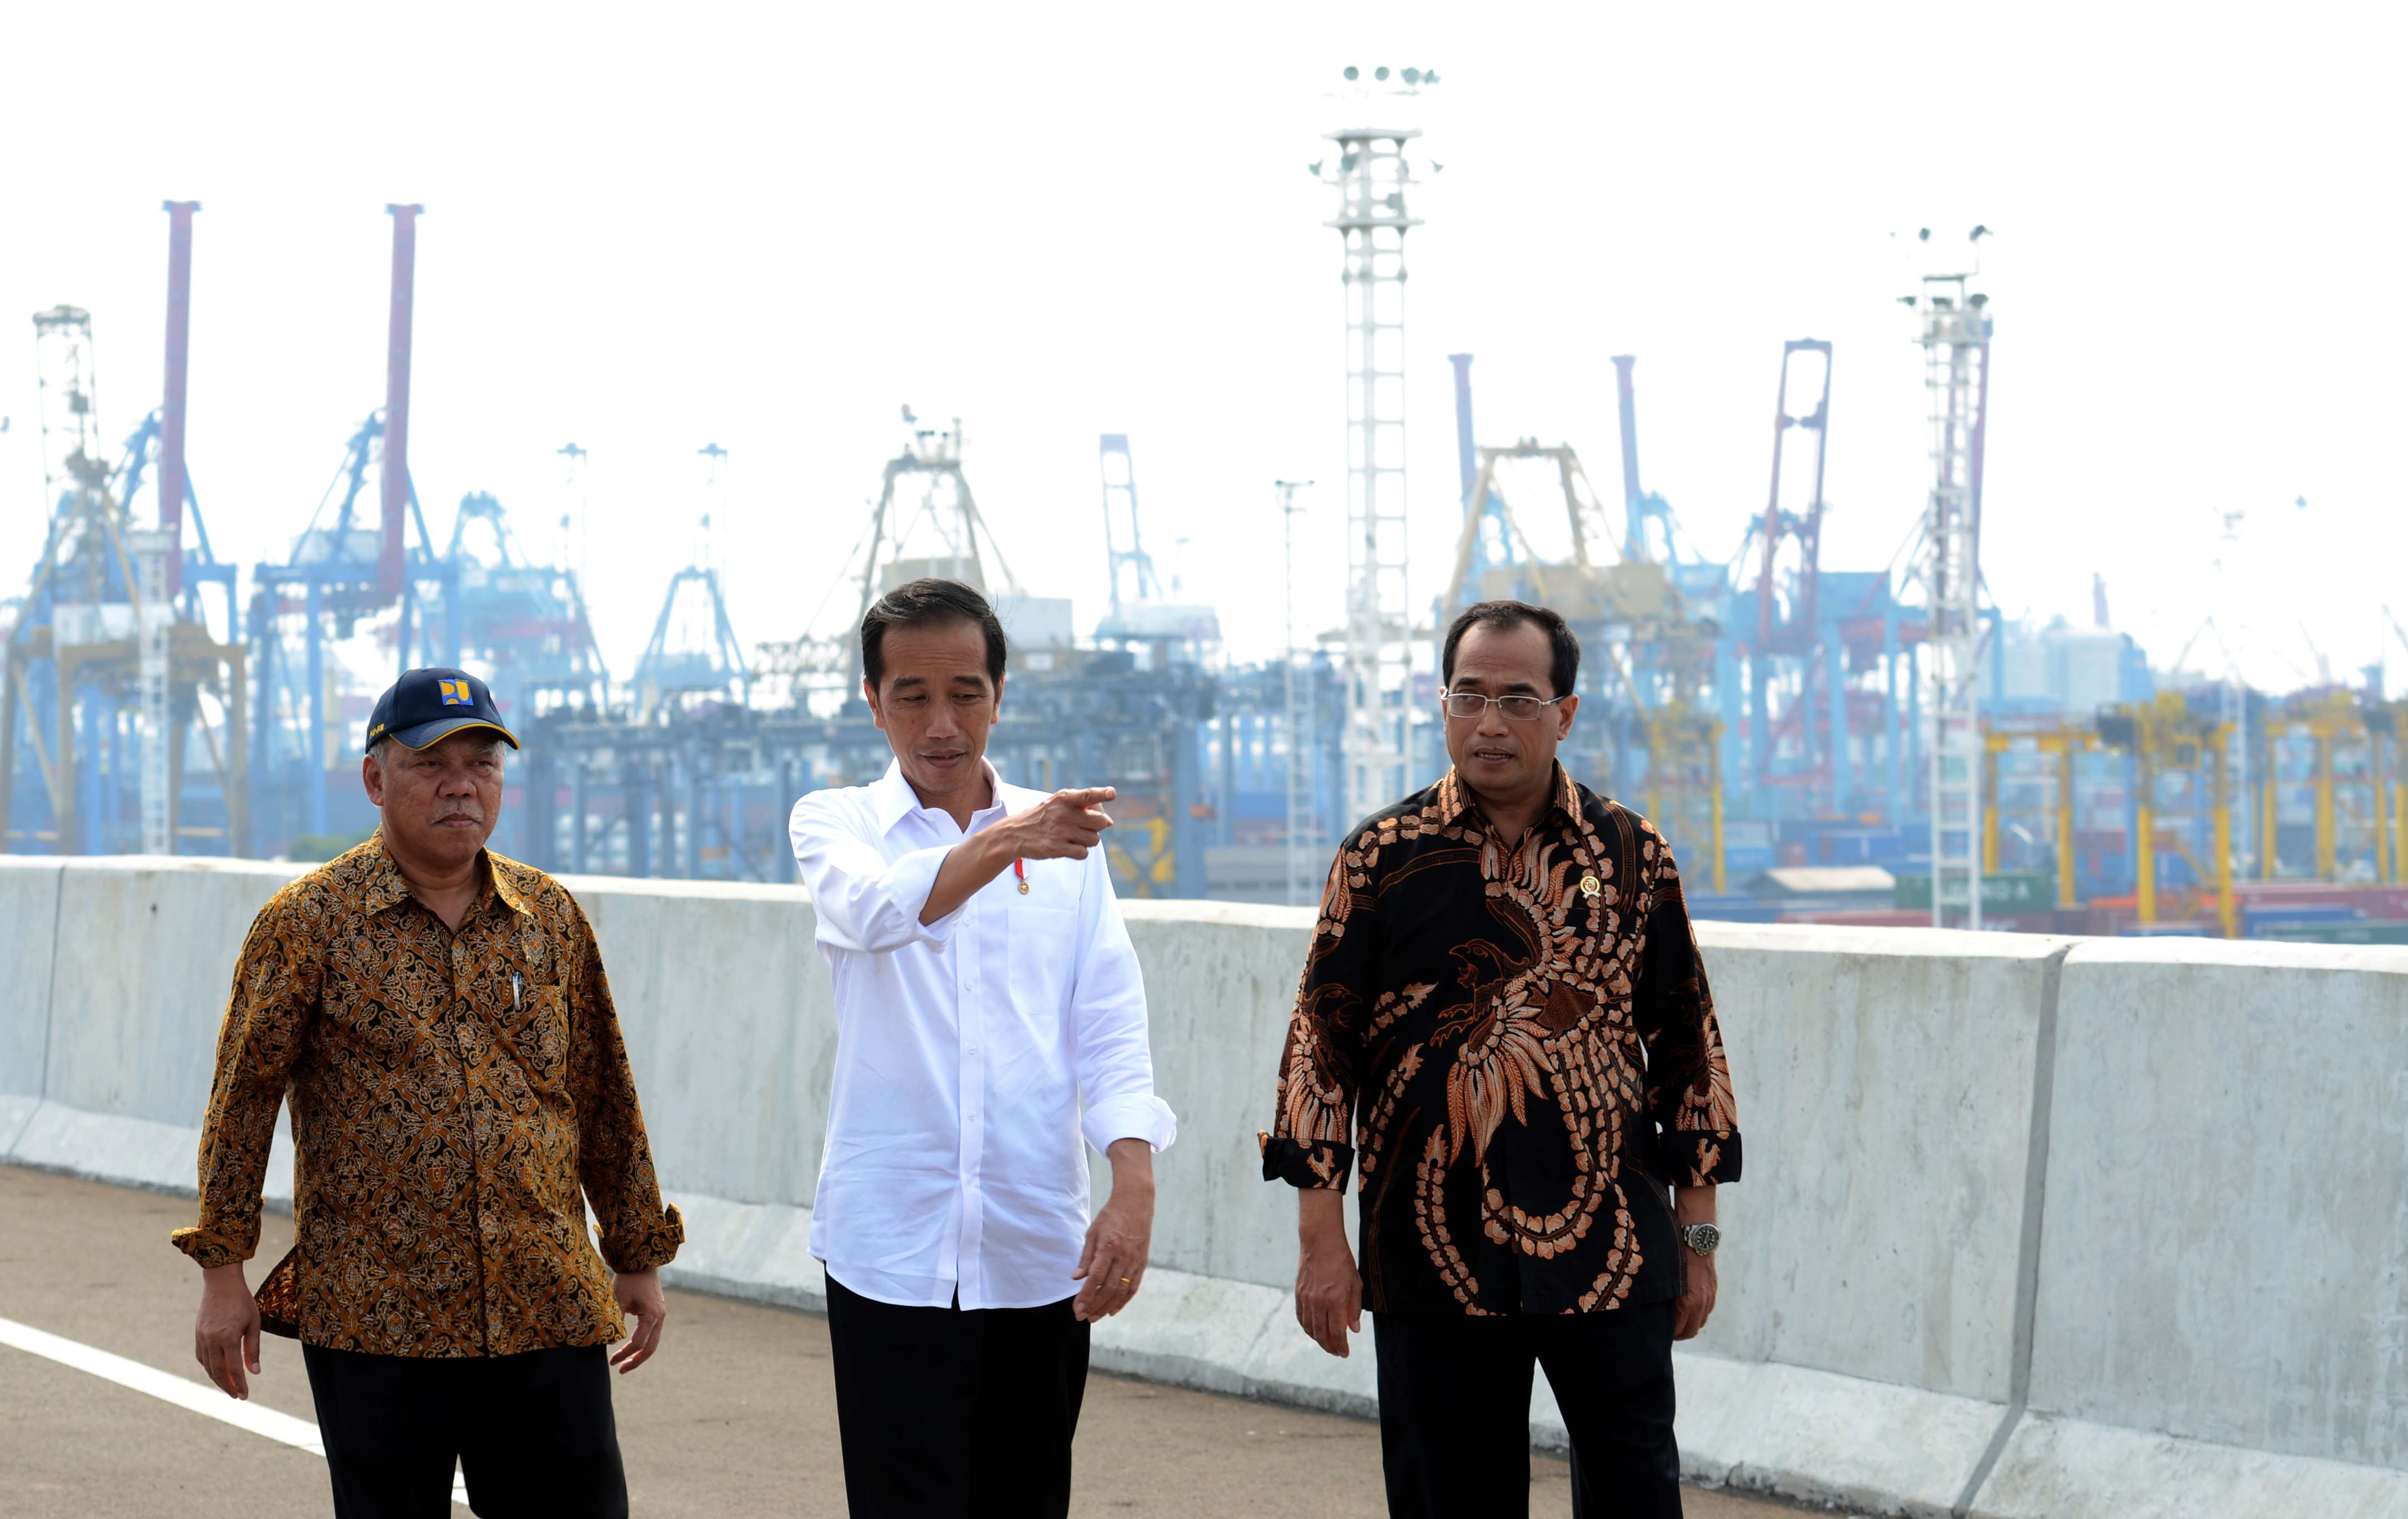 President Jokowi accompanied by Transportation Minister and Public Works and Public Housing Minister reviews Tanjung Priok Toll Road in Jakarta, Saturday (15/4). (Photo: PR/Jay)